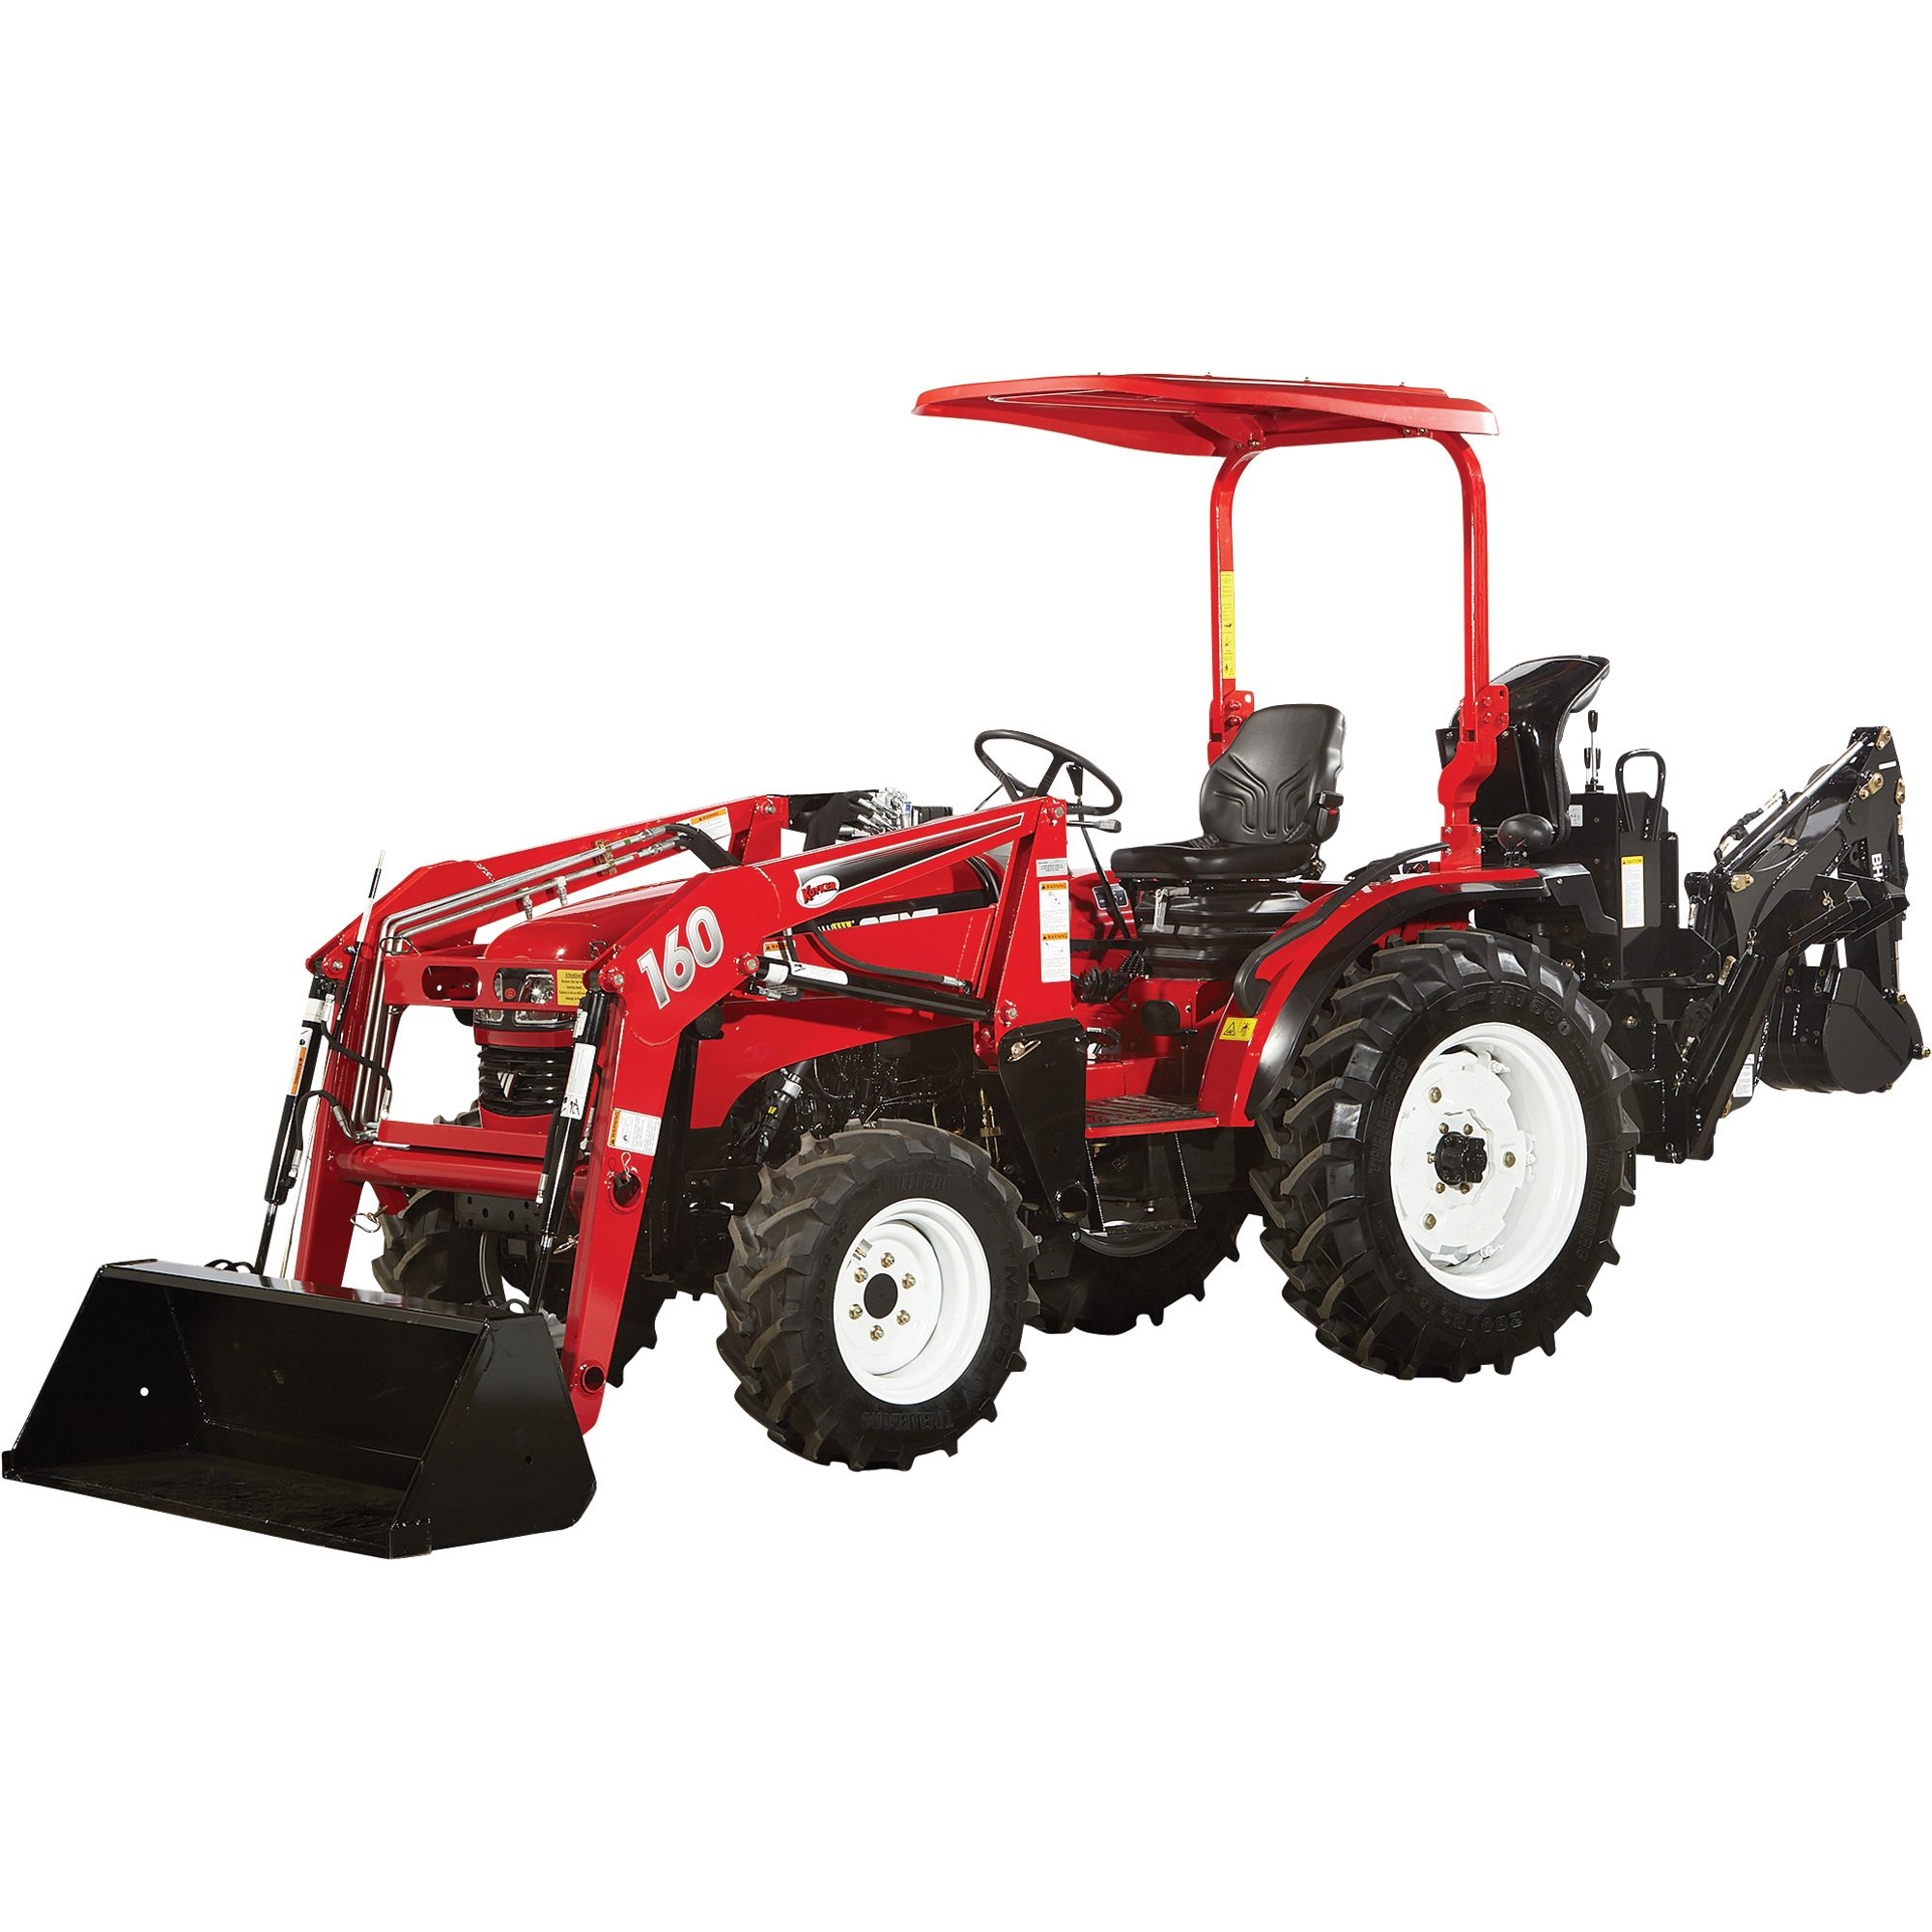 Nortrac 35xt 35 hp 4wd tractor with front end loader backhoe with hybrid tires